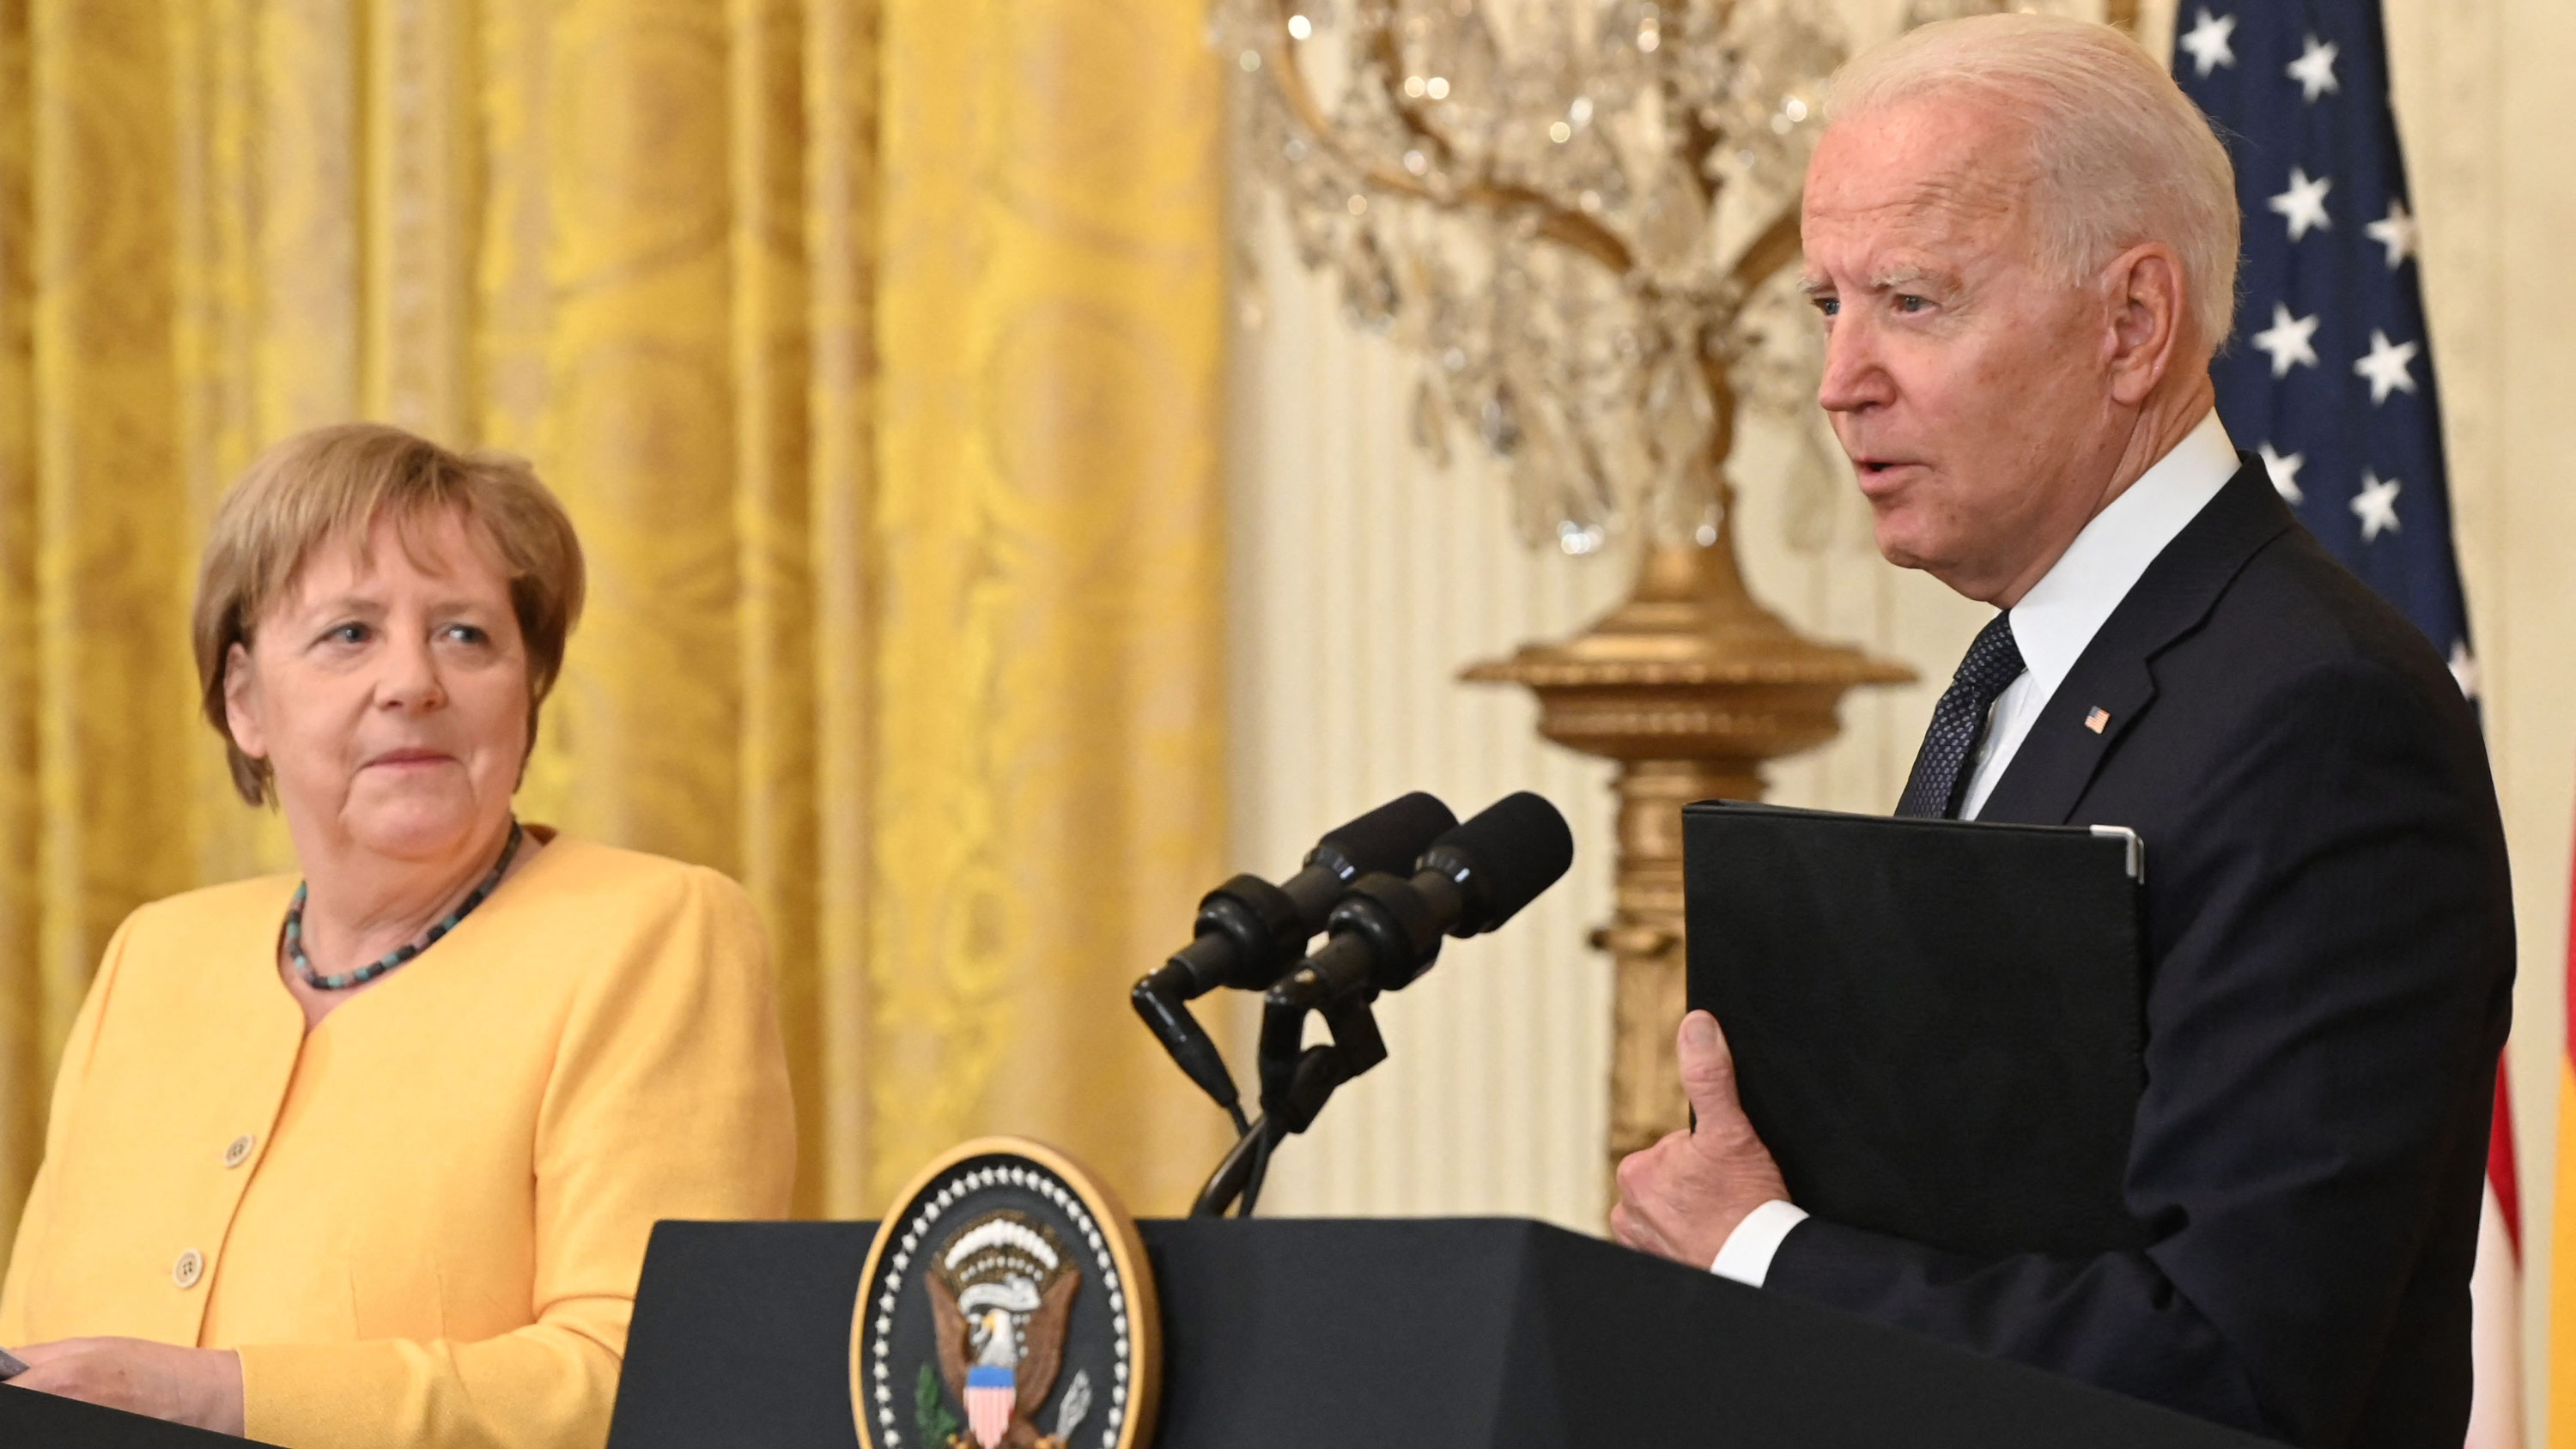 President Joe Biden and German Chancellor Angela Merkel hold a joint press conference in the East Room of the White House in Washington, DC, on July 15.